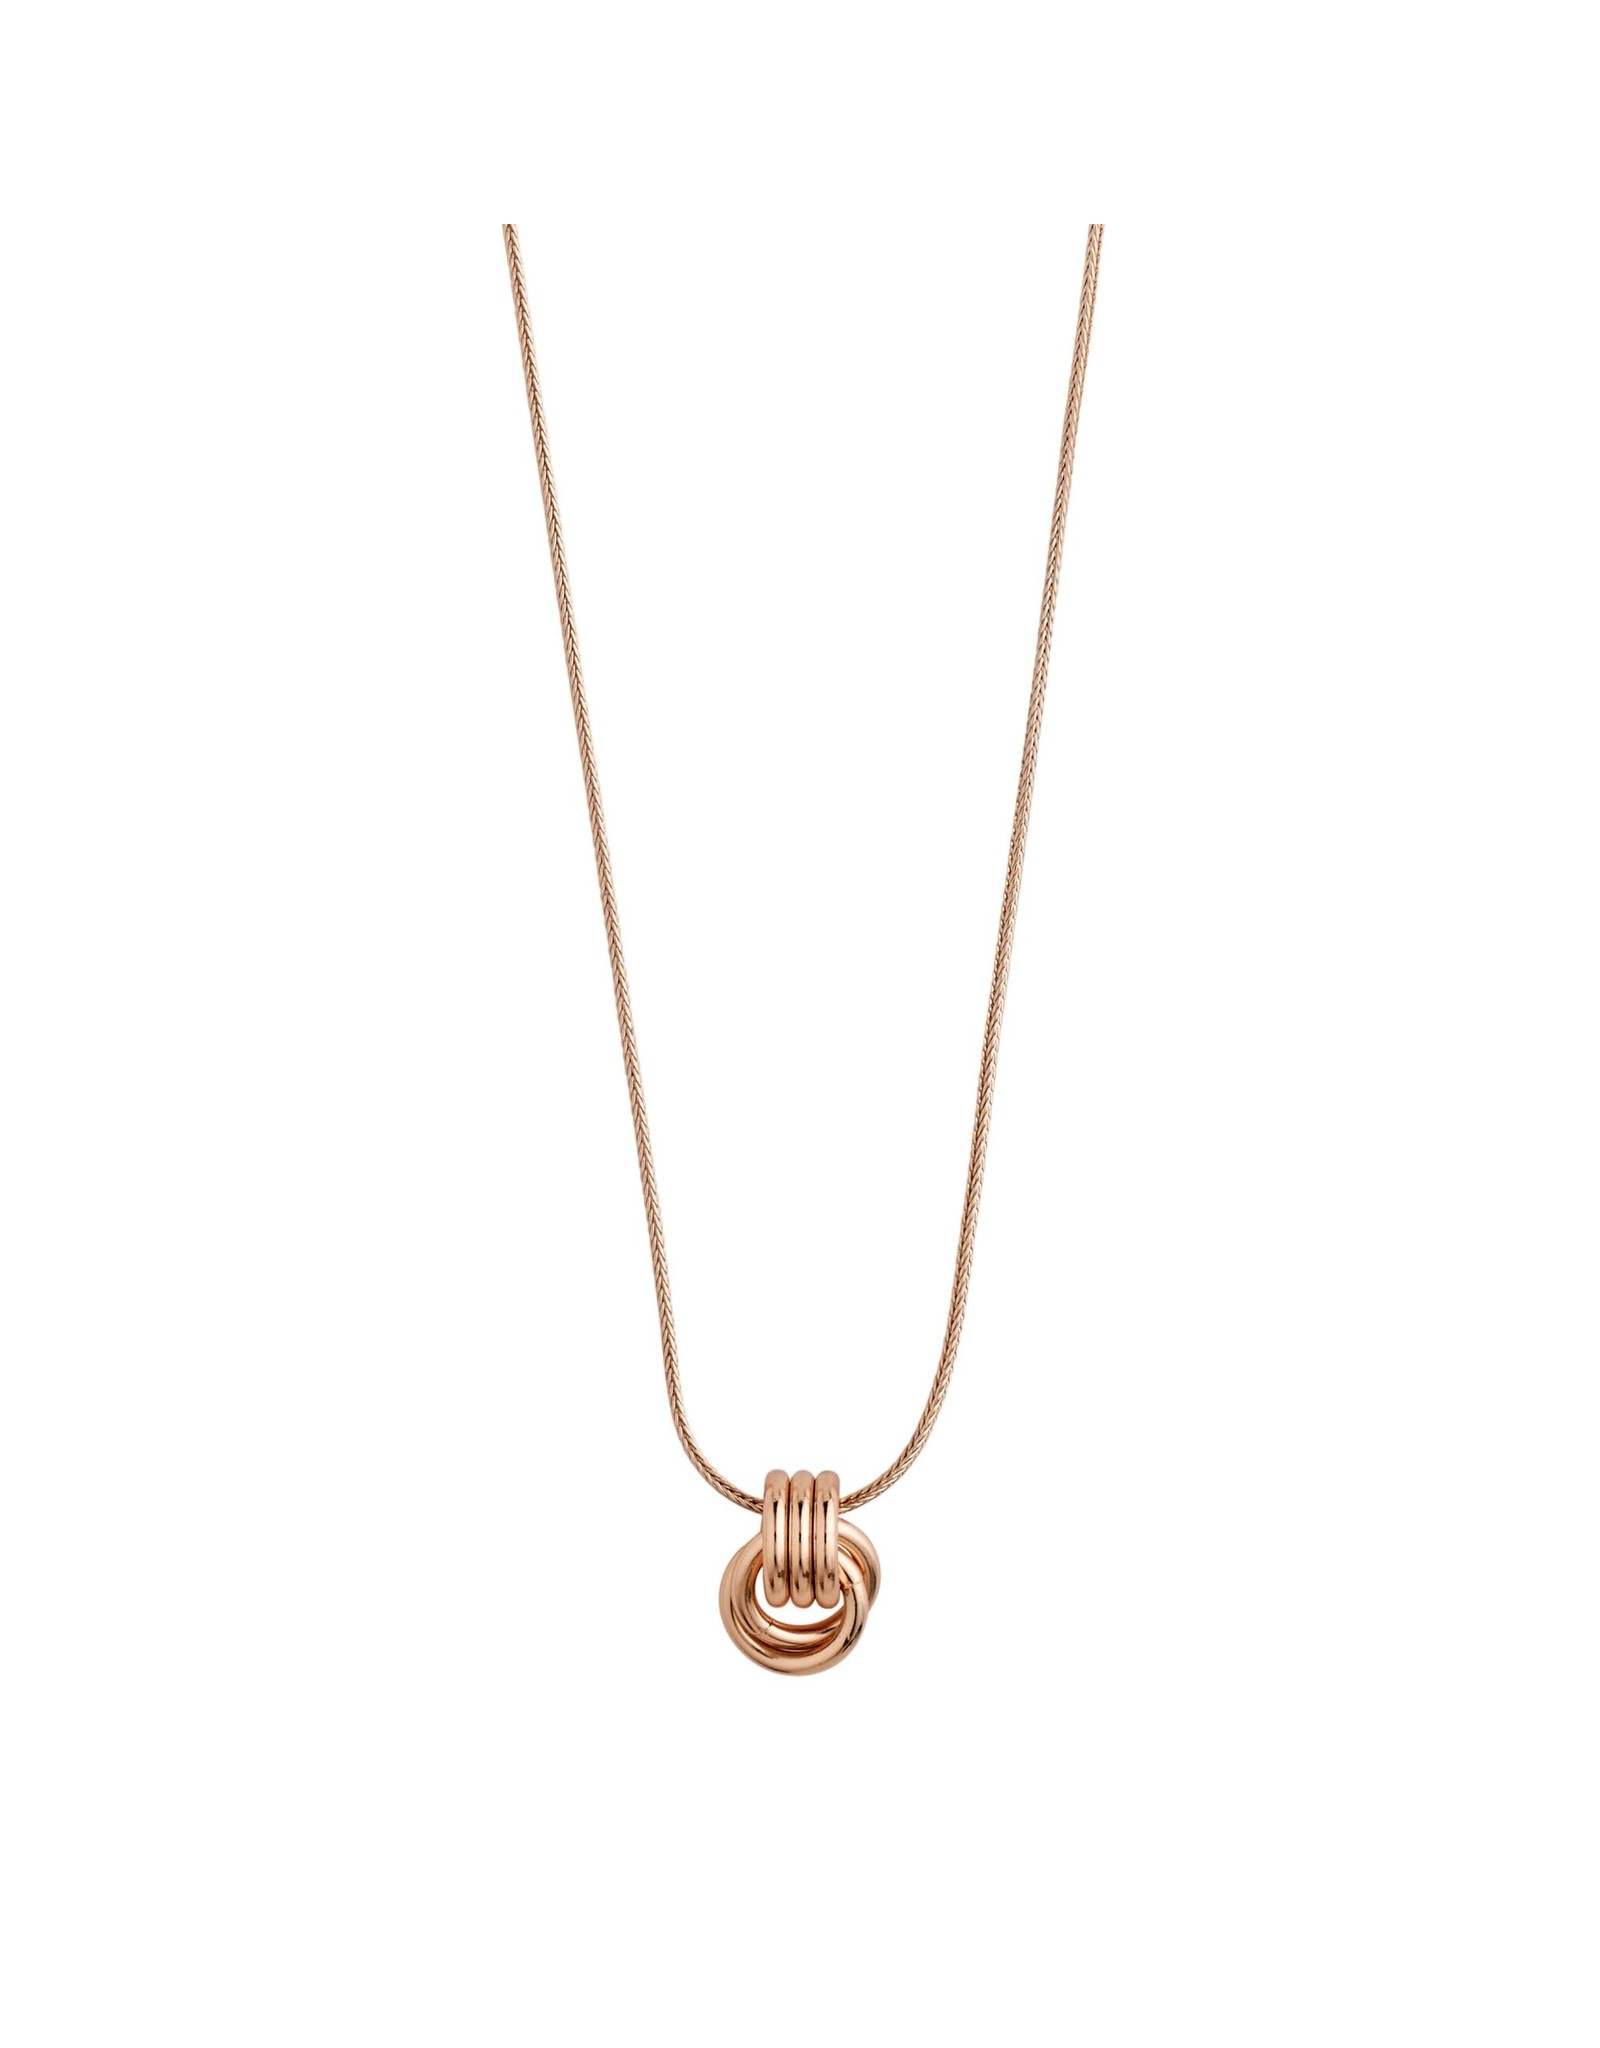 Pilgrim Pilgrim Doris Necklace Rose Gold Plated